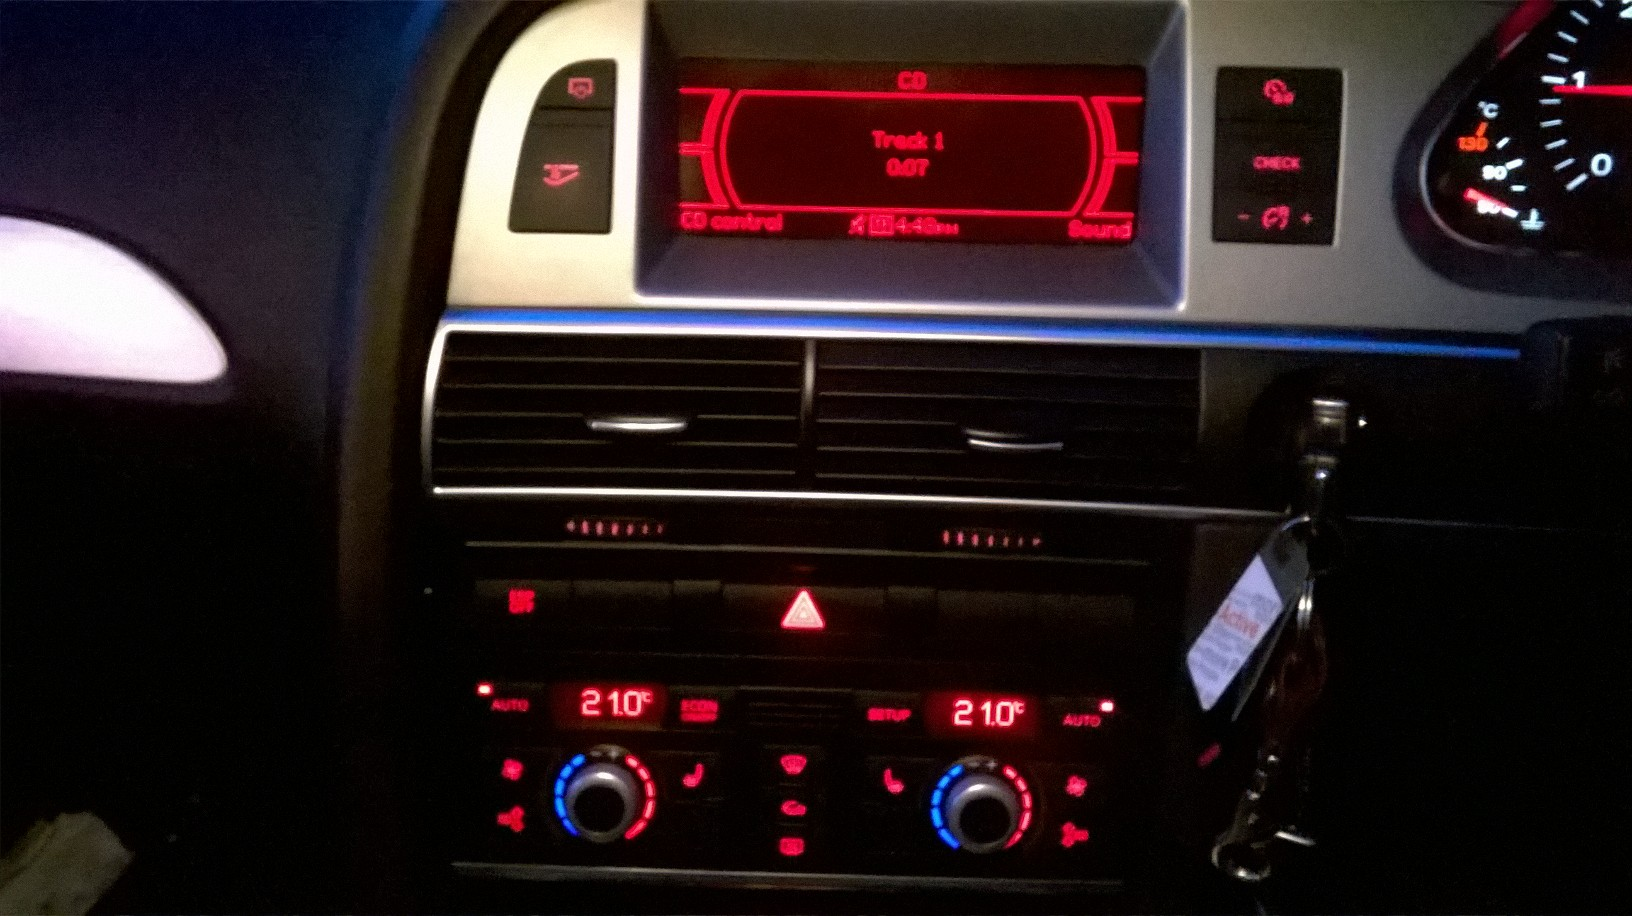 audi a6 2 7 tdi stereo upgrade navigation audi. Black Bedroom Furniture Sets. Home Design Ideas